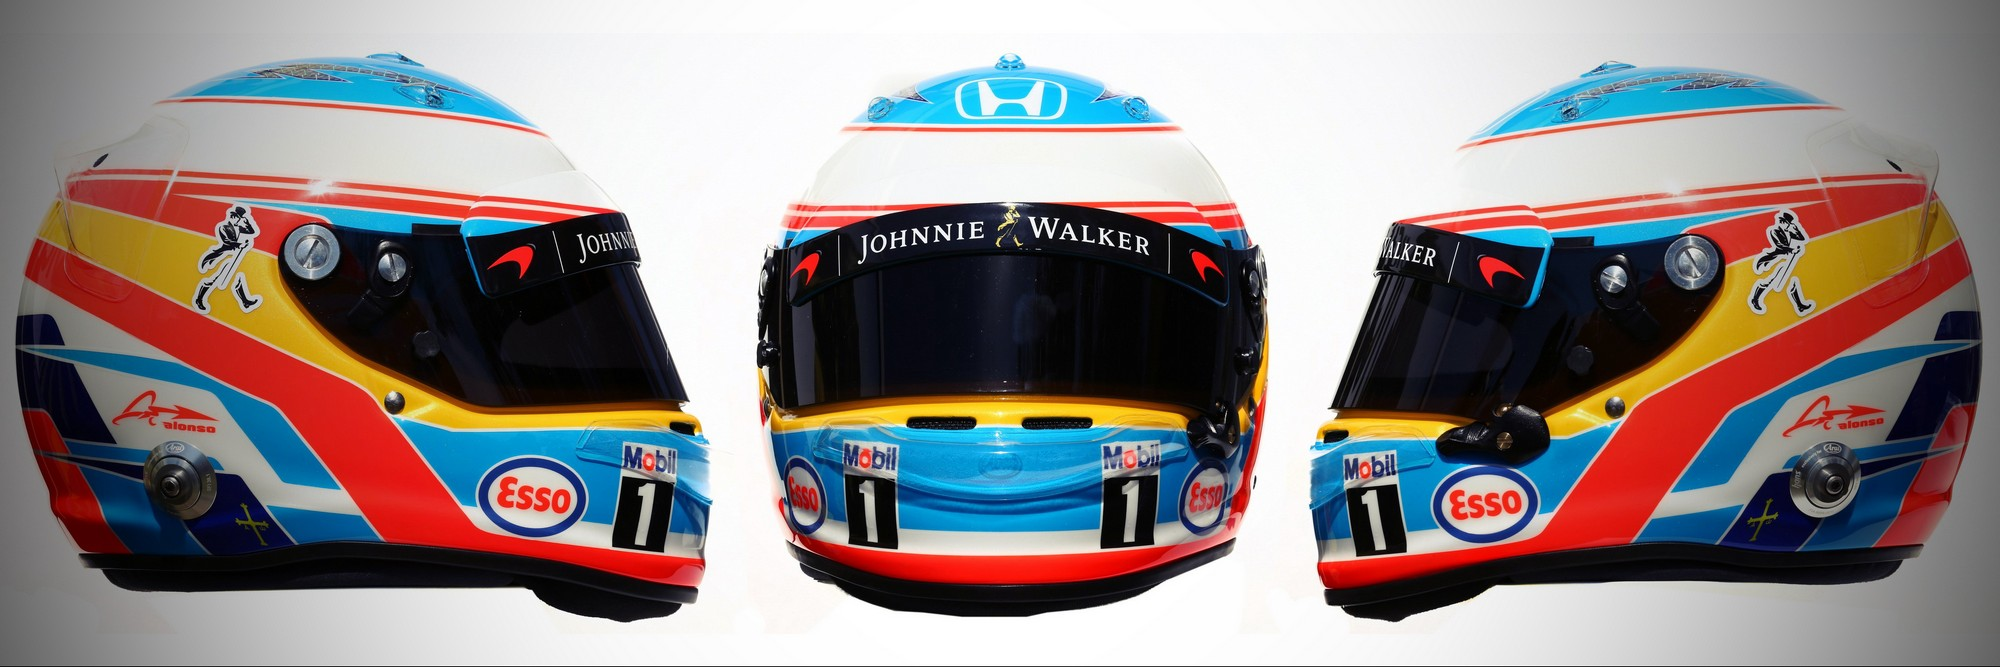 Шлем Фернандо Алонсо на сезон 2016 года | 2016 helmet of Fernando Alonso